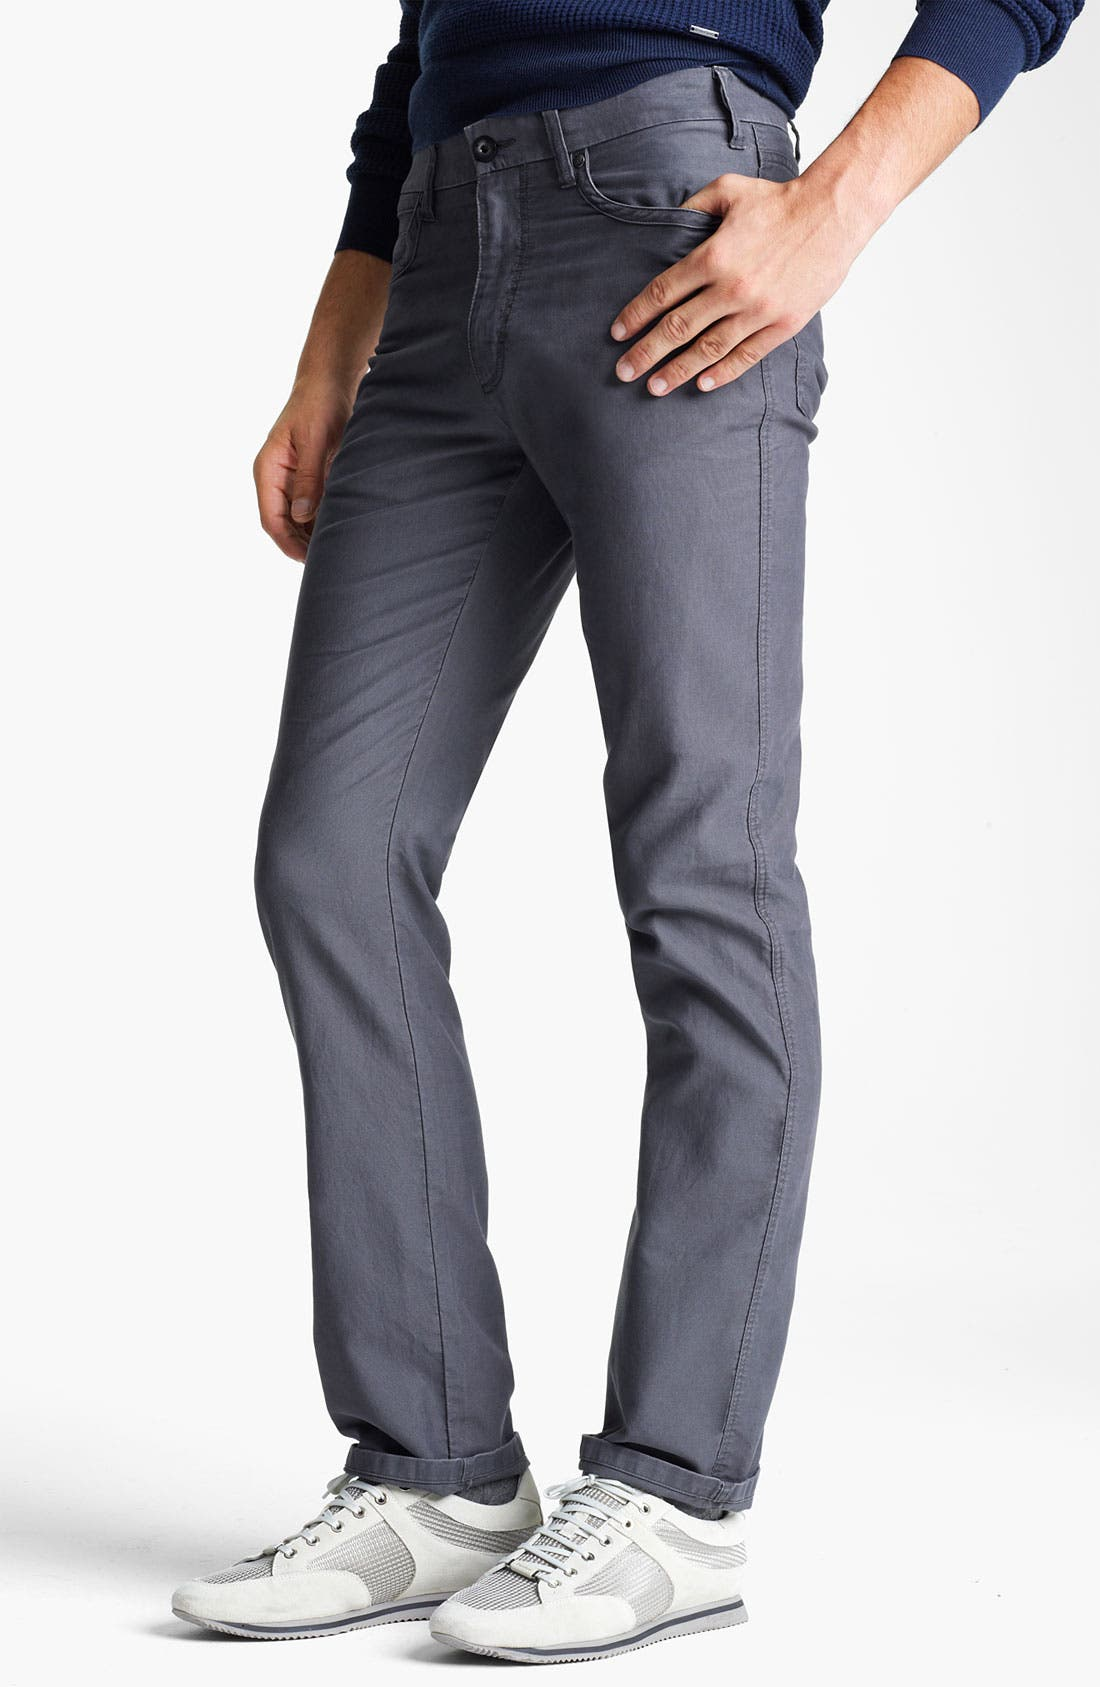 Main Image - Zegna Sport Five Pocket Cotton Pants